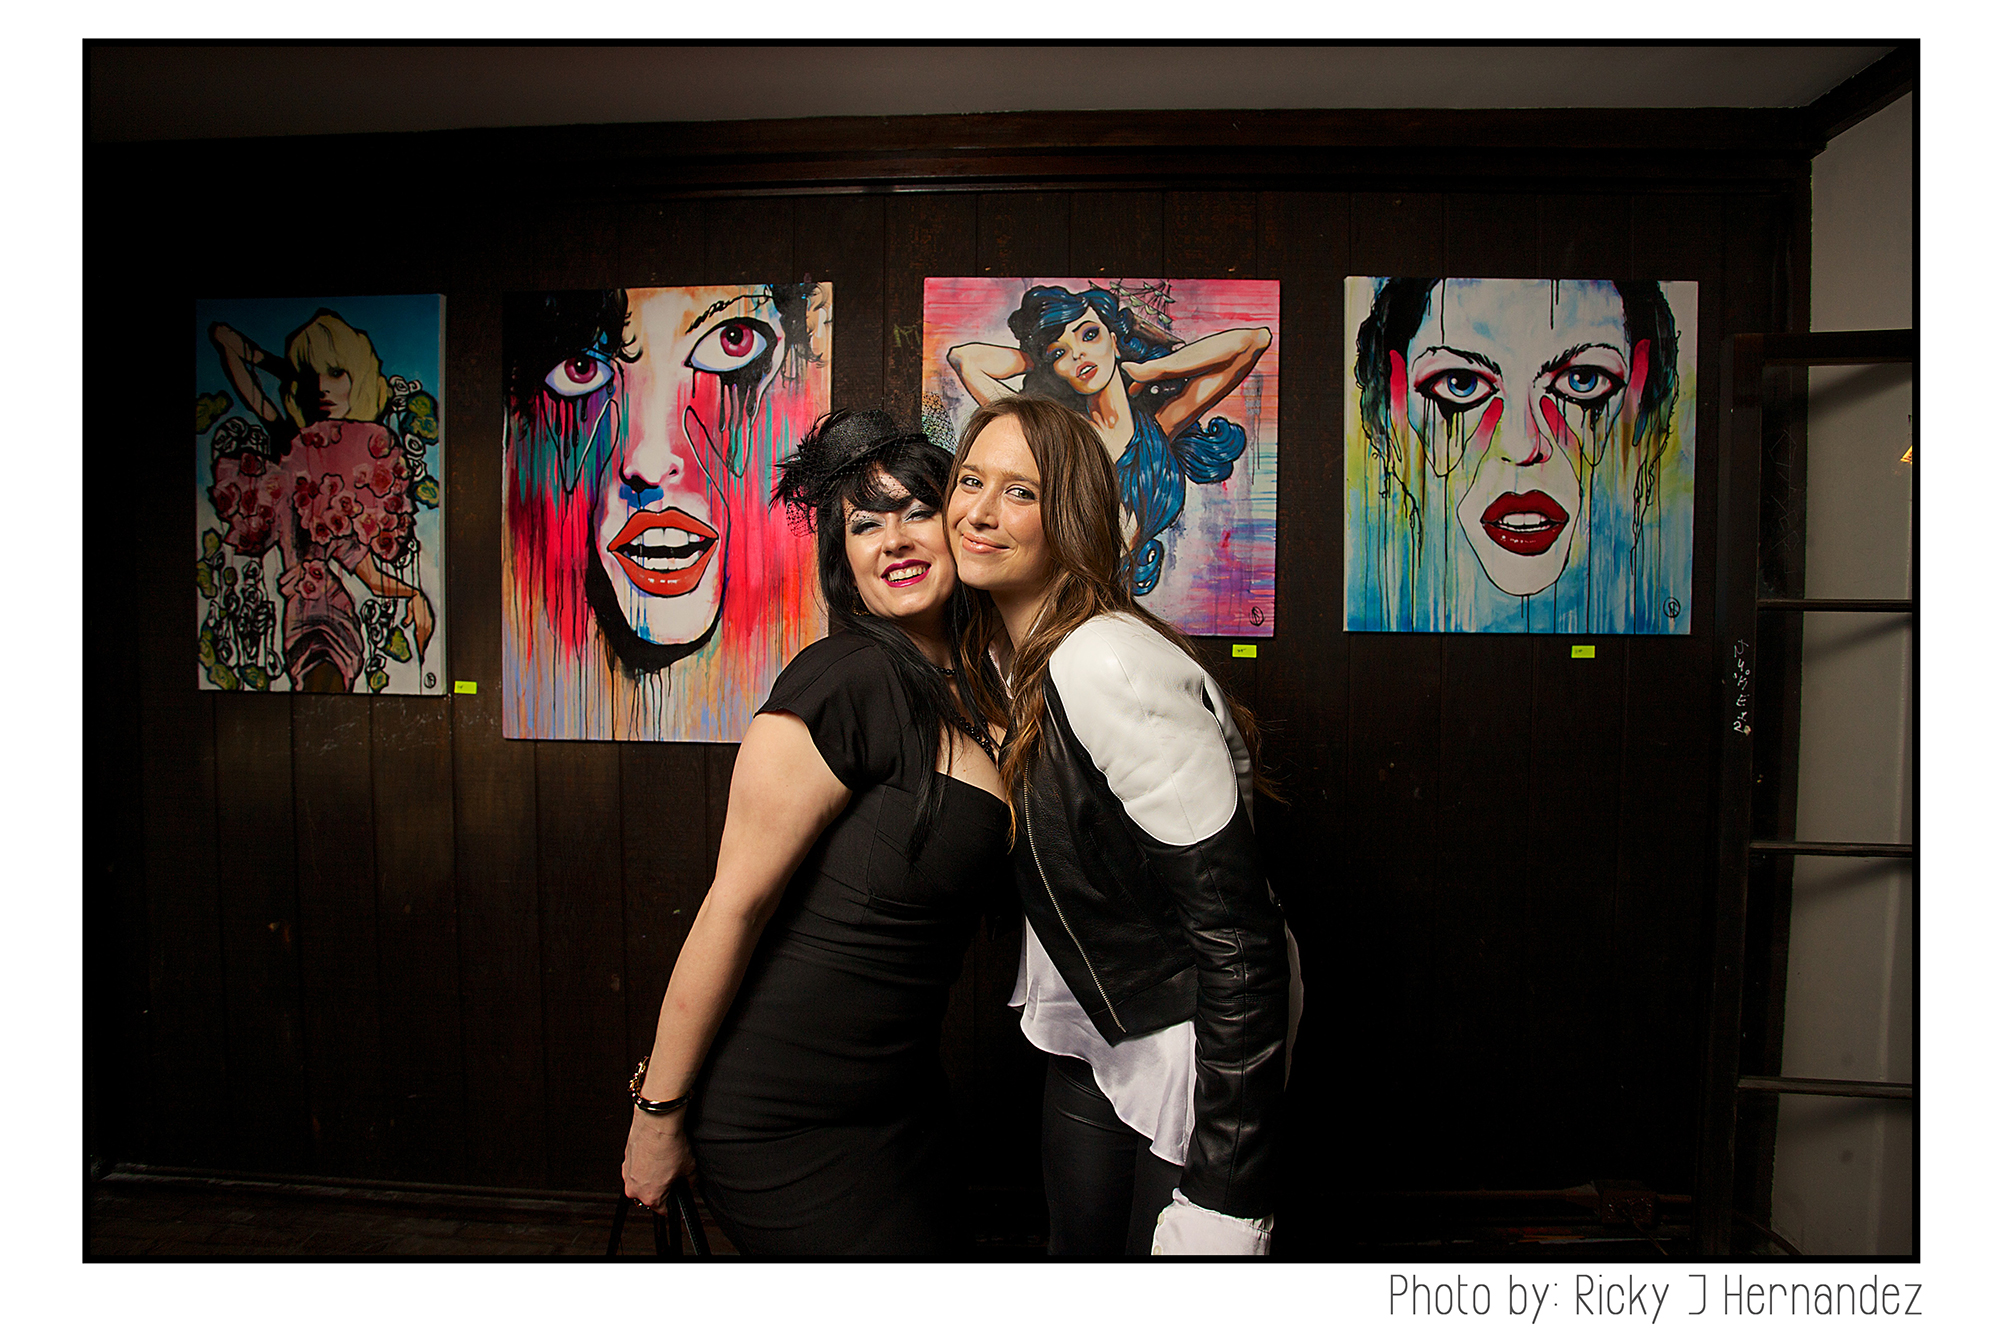 Ricky-J-Hernandez-photography-Oh-poop-I-have-Lupus-art-show-for-Delia-sweet-tooth-in-Privy-studio-Los-Angeles-CA-075